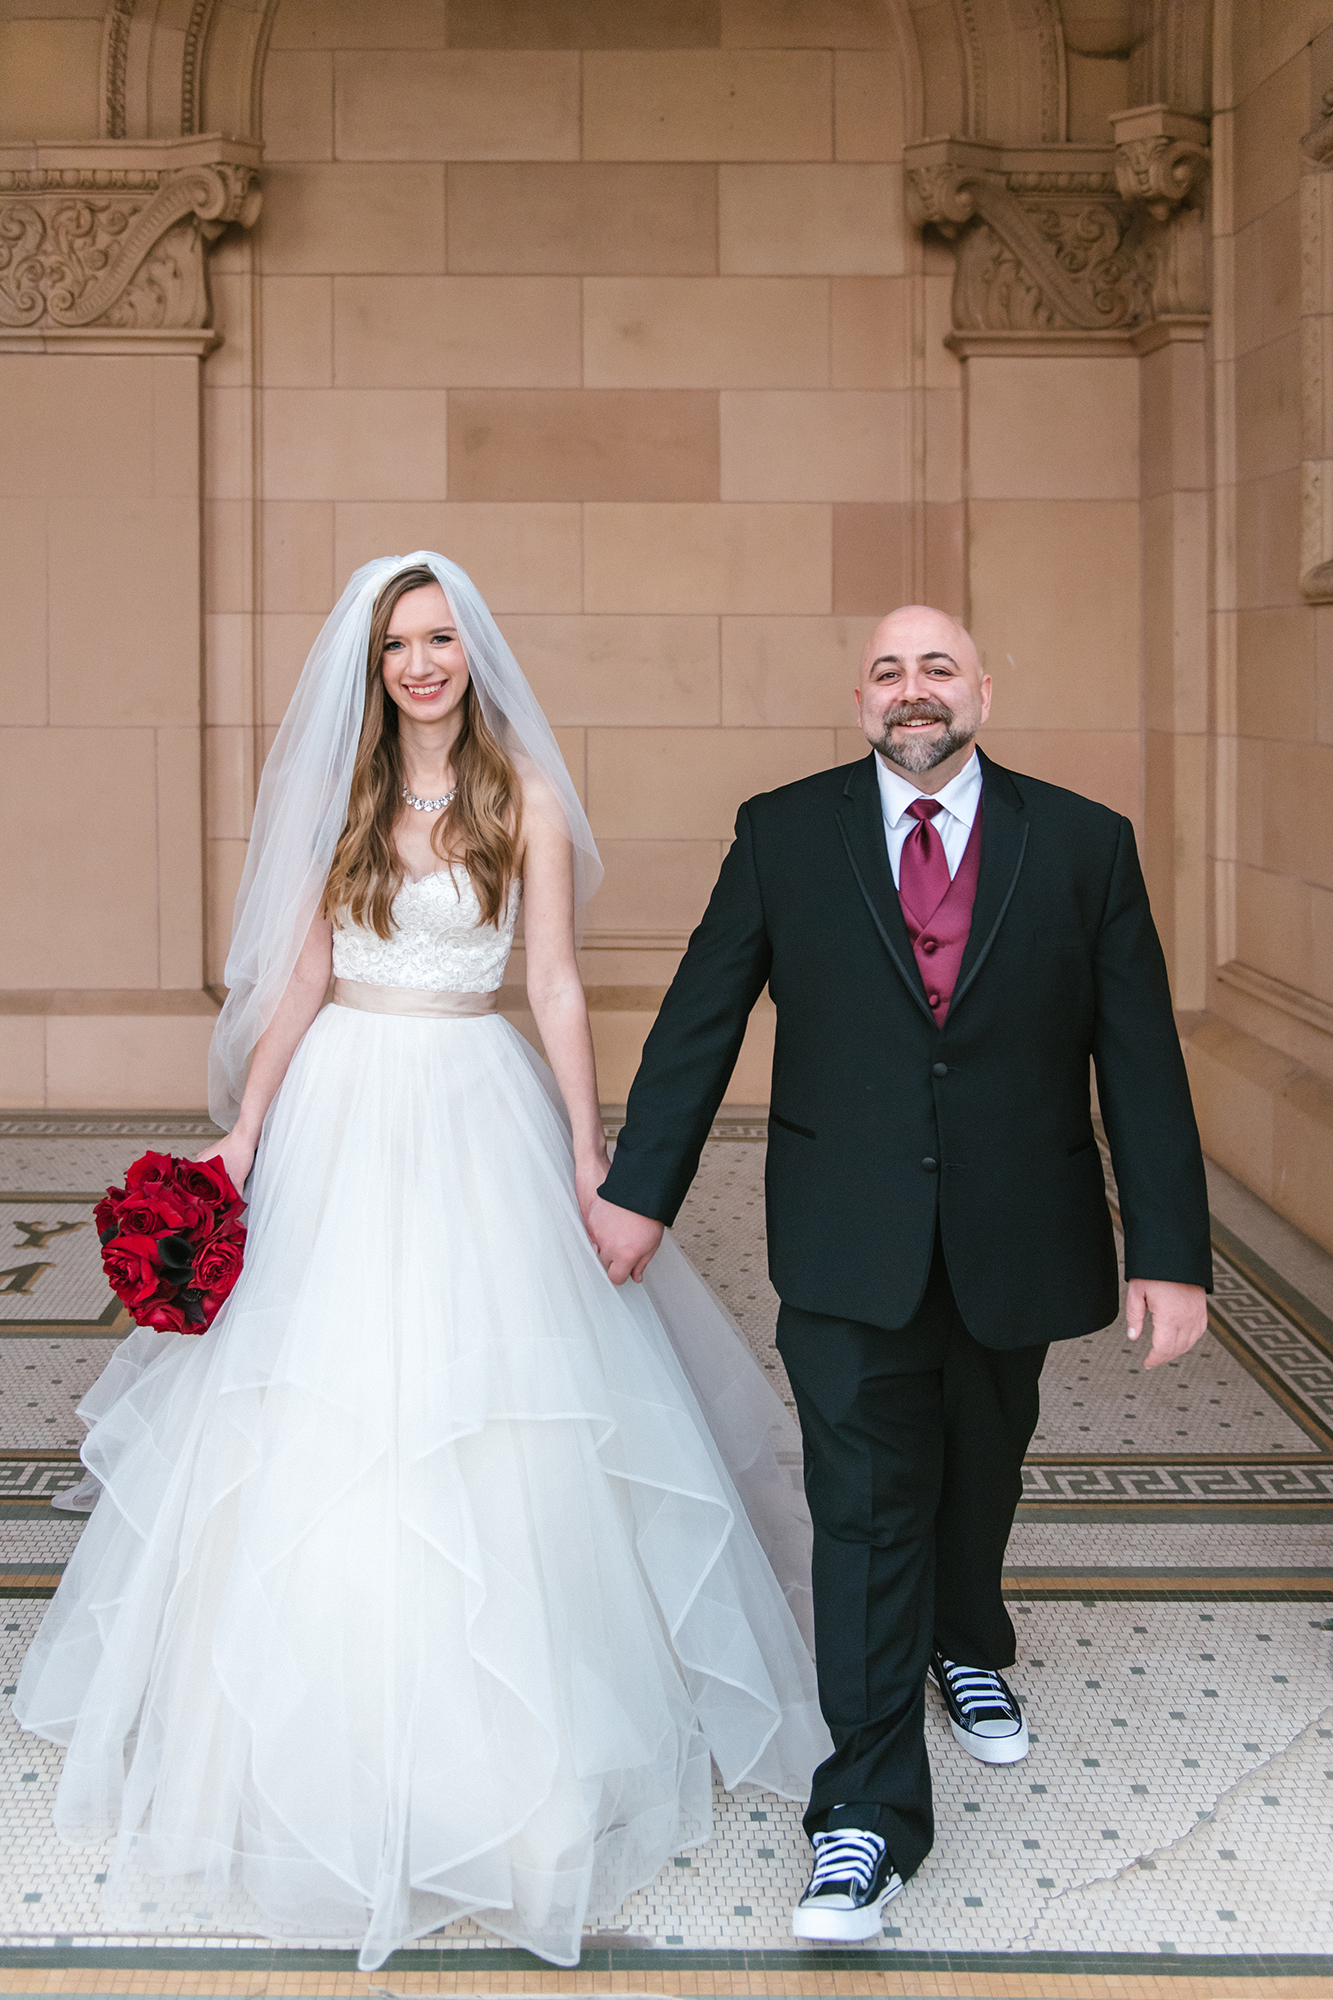 duff goldman johnna colbry couple walking together